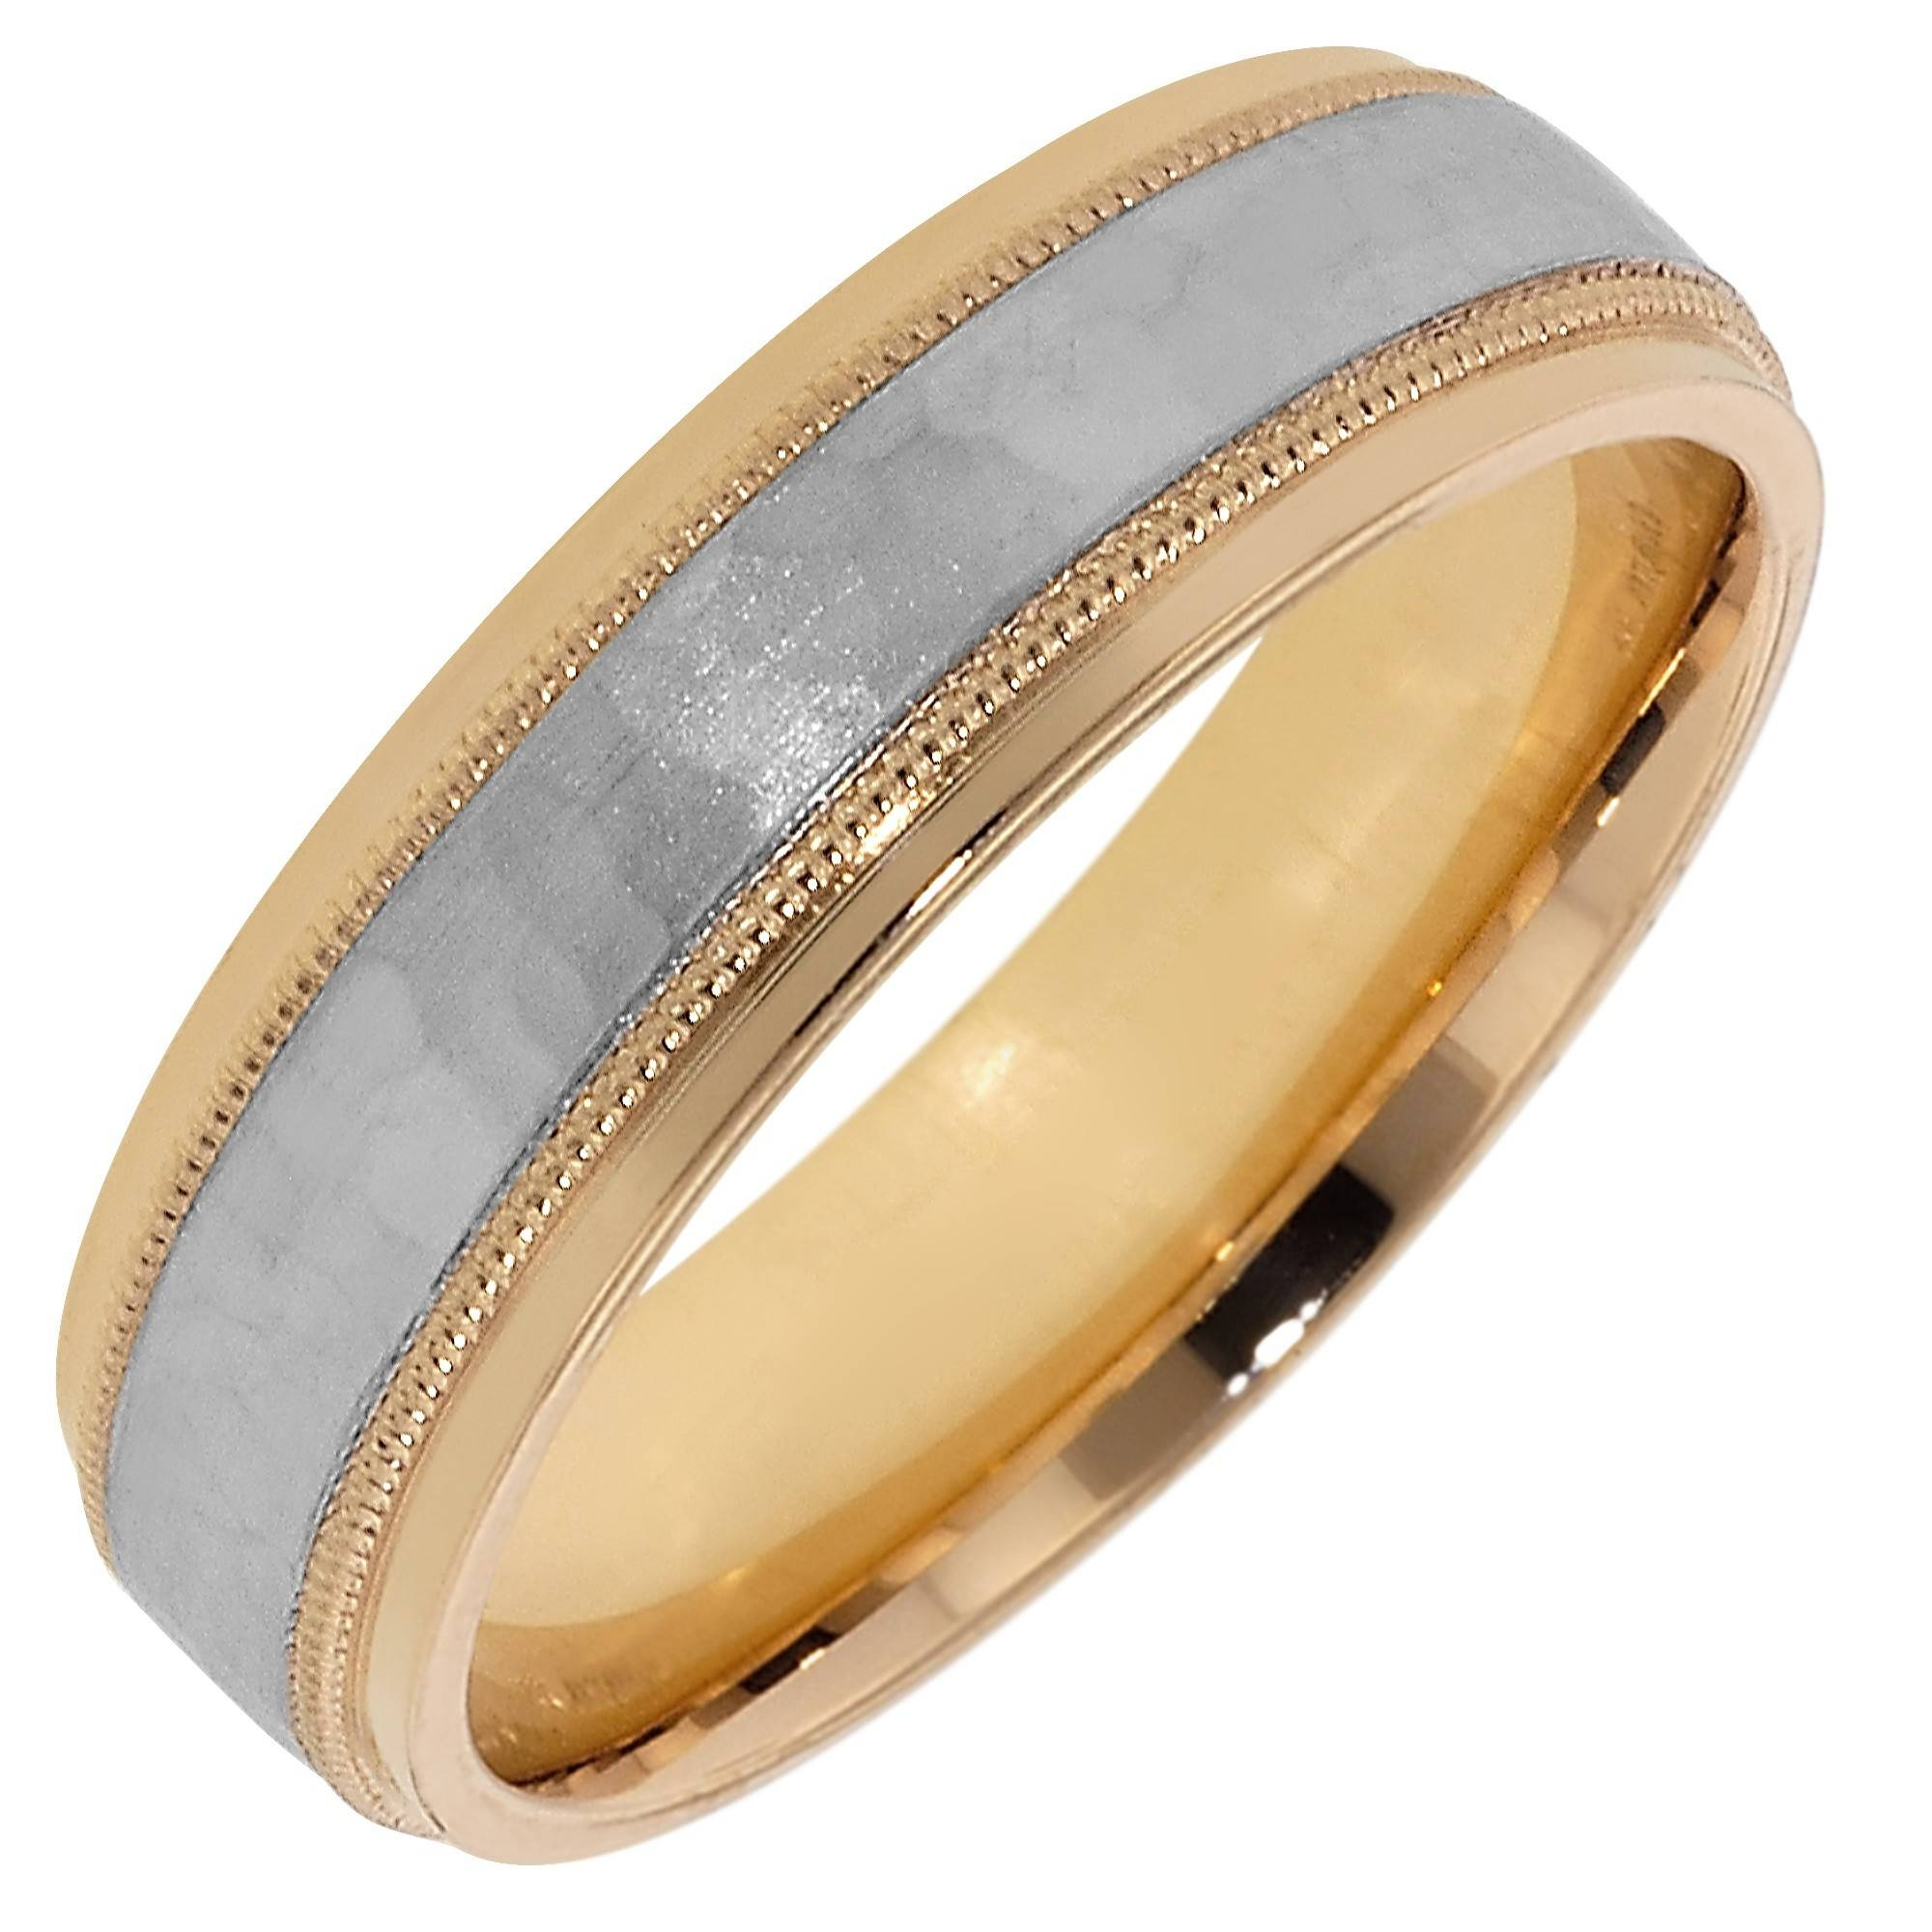 Artcarved Mens Hammered Wedding Band In 14kt Yellow Gold And White Intended For Artcarved Men Wedding Bands (View 13 of 15)